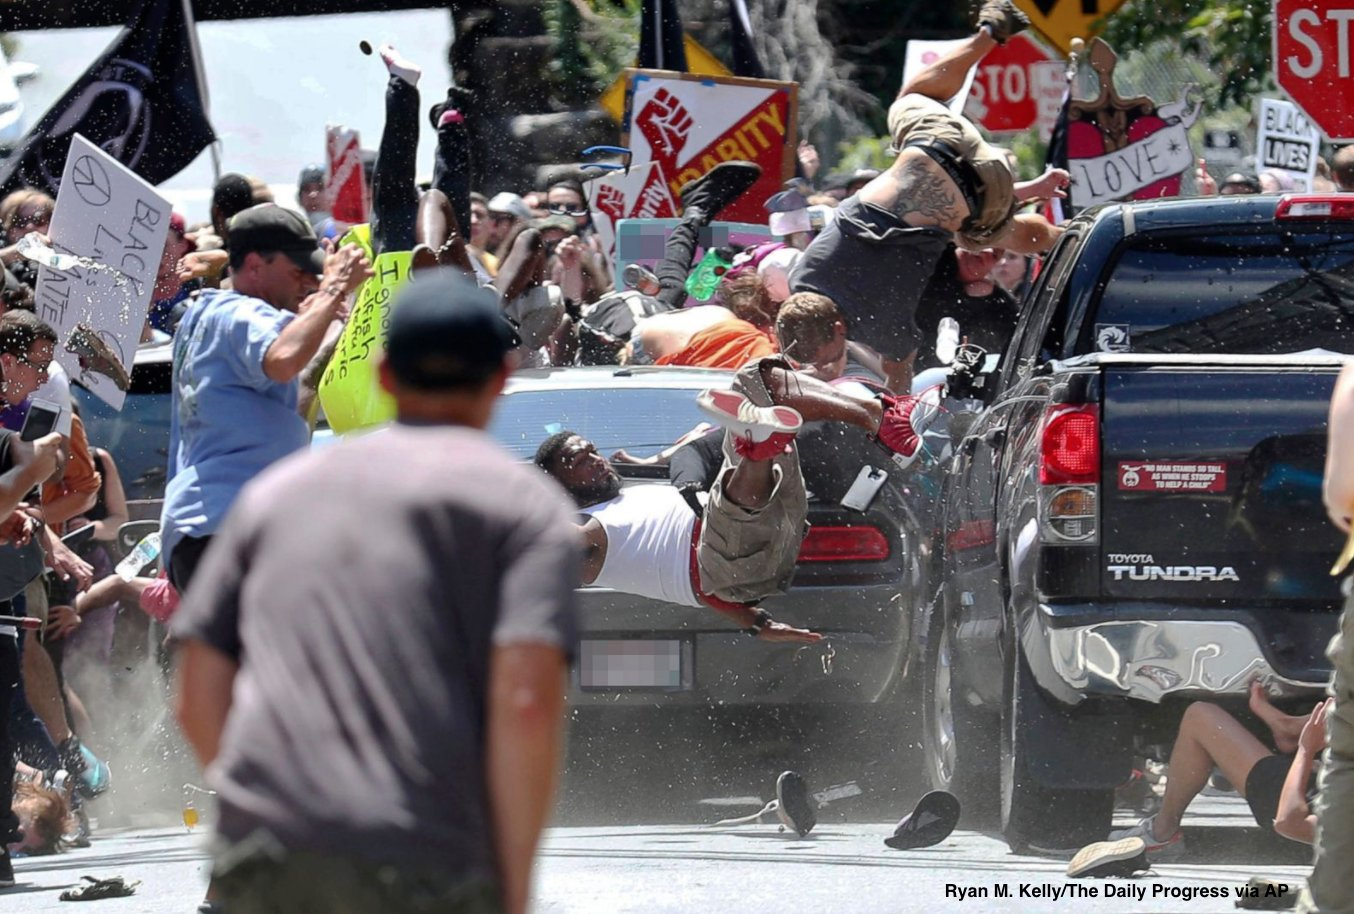 Horrifying images emerge from violent day in #Charlottesville. https://t.co/vXY37csI4G https://t.co/zxNP49D77g